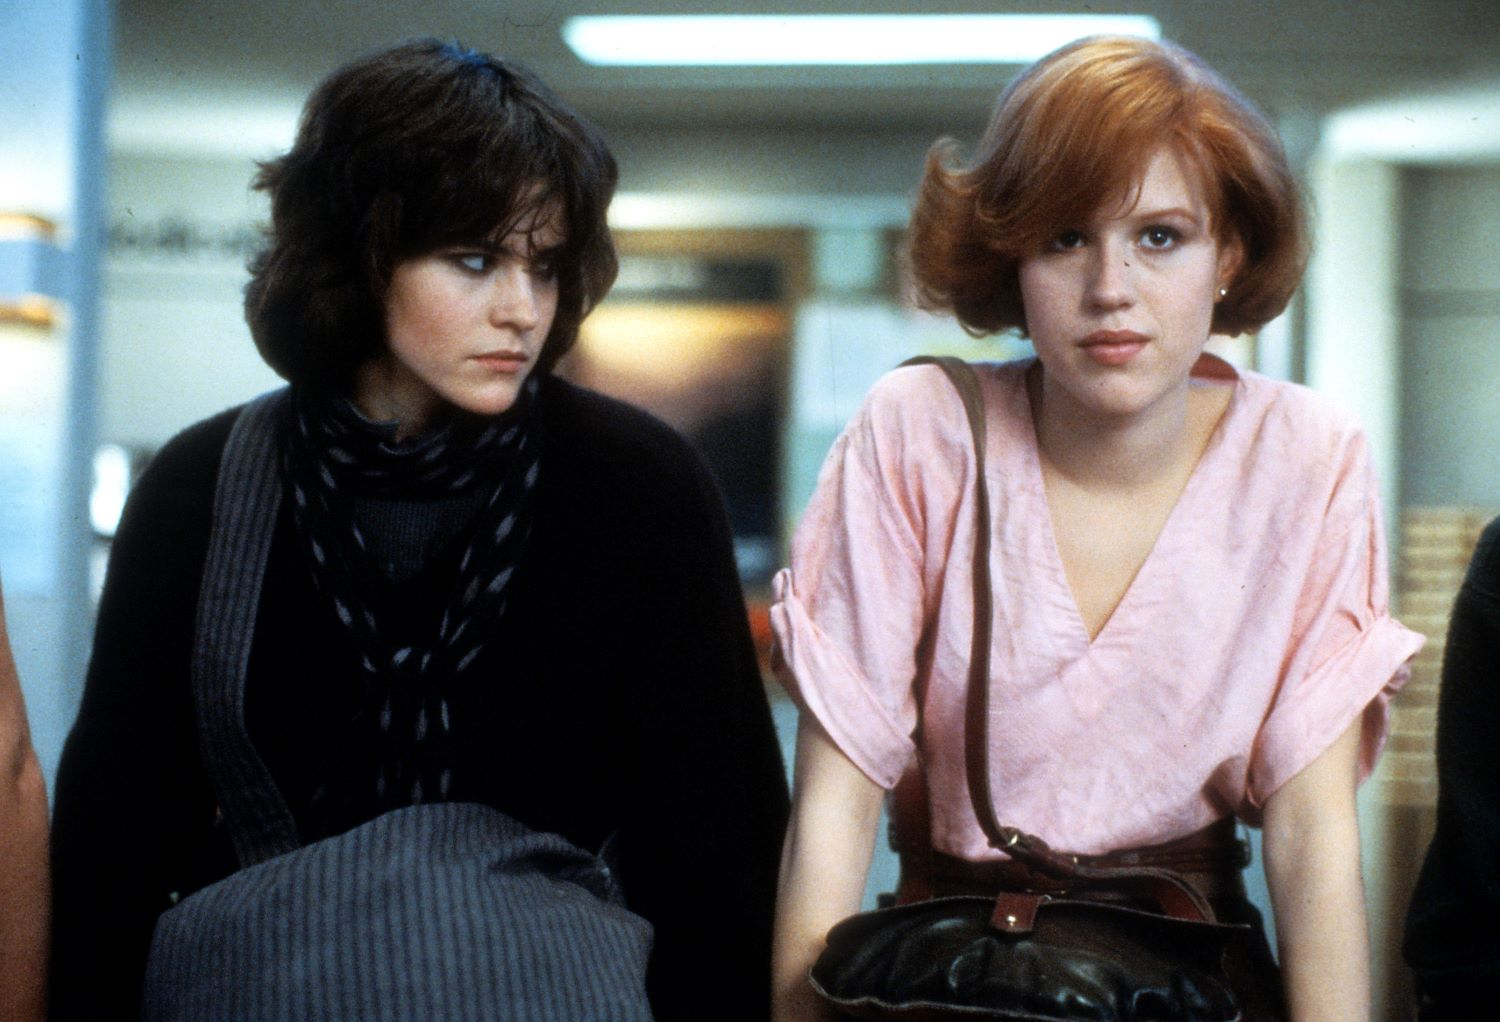 Ali Sheedy and Molly Ringwald in 'The Breakfast Club'